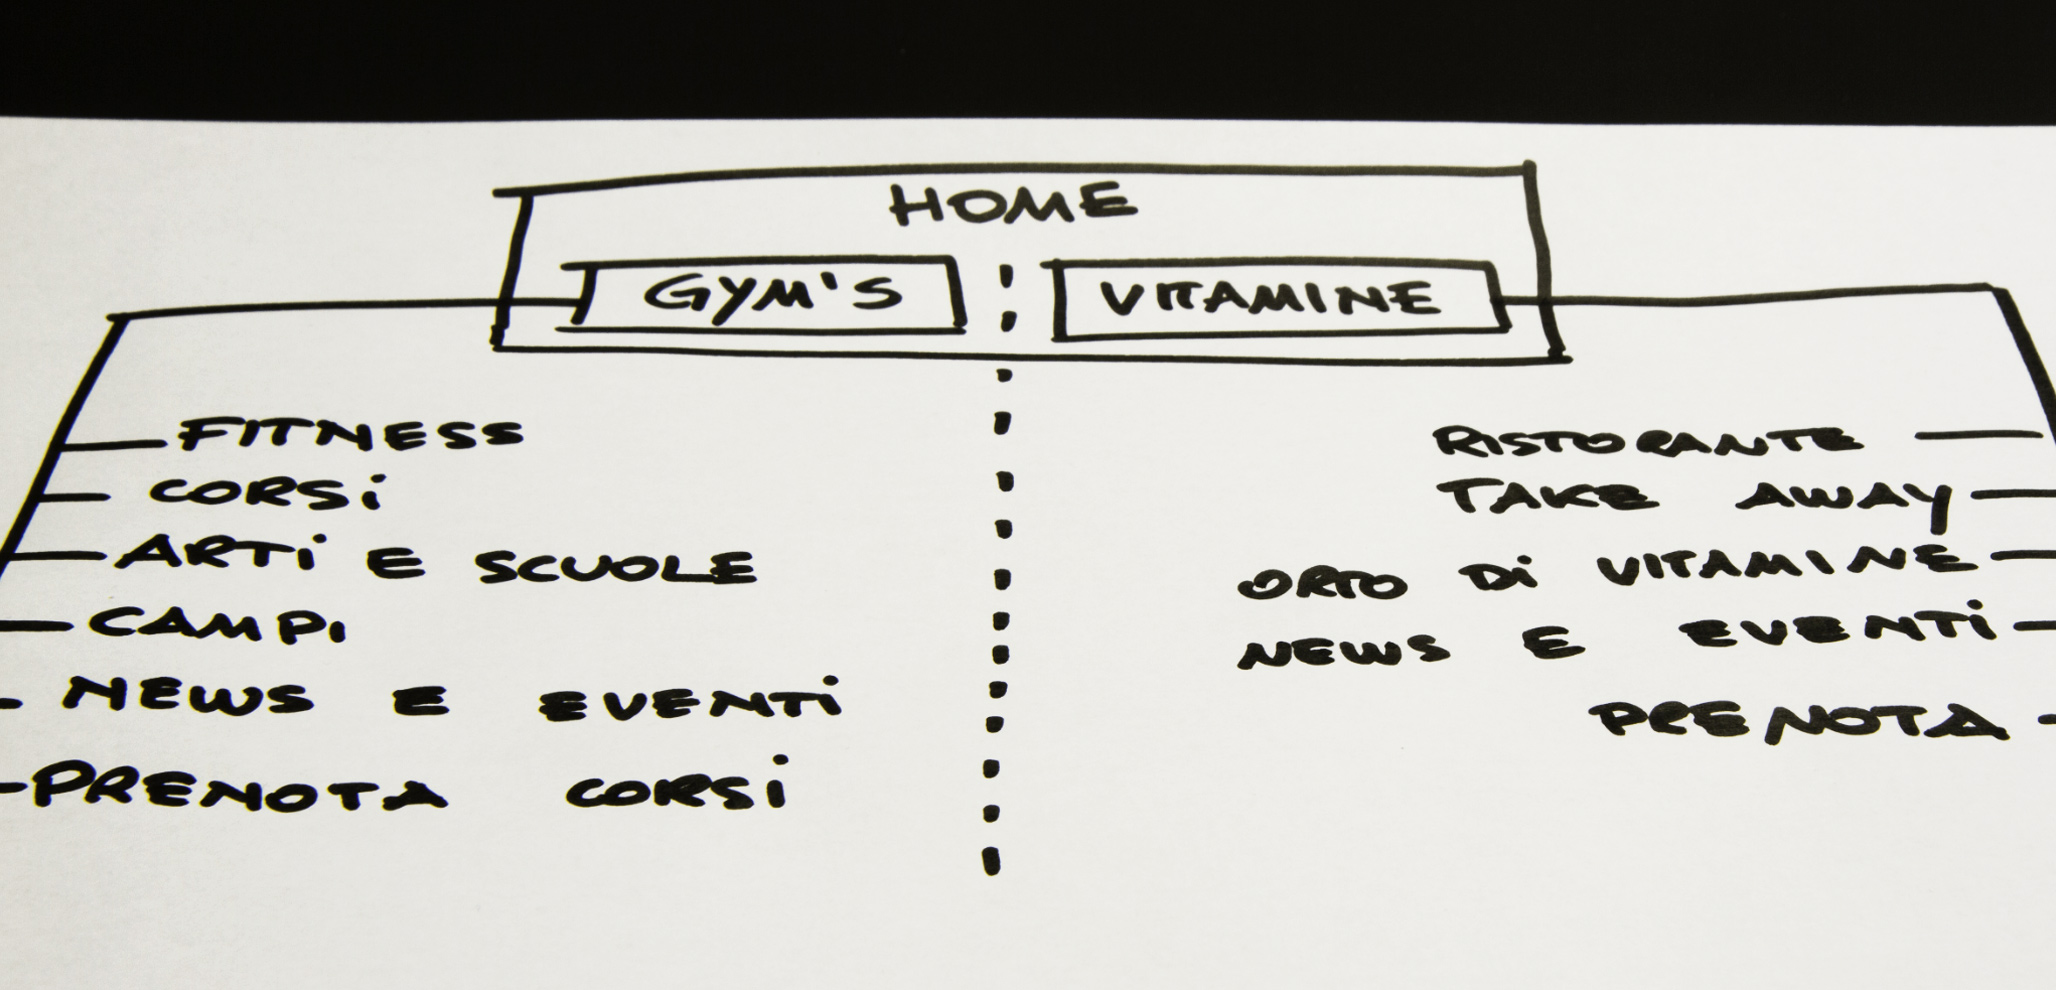 big_wireframe_gyms-vitamine